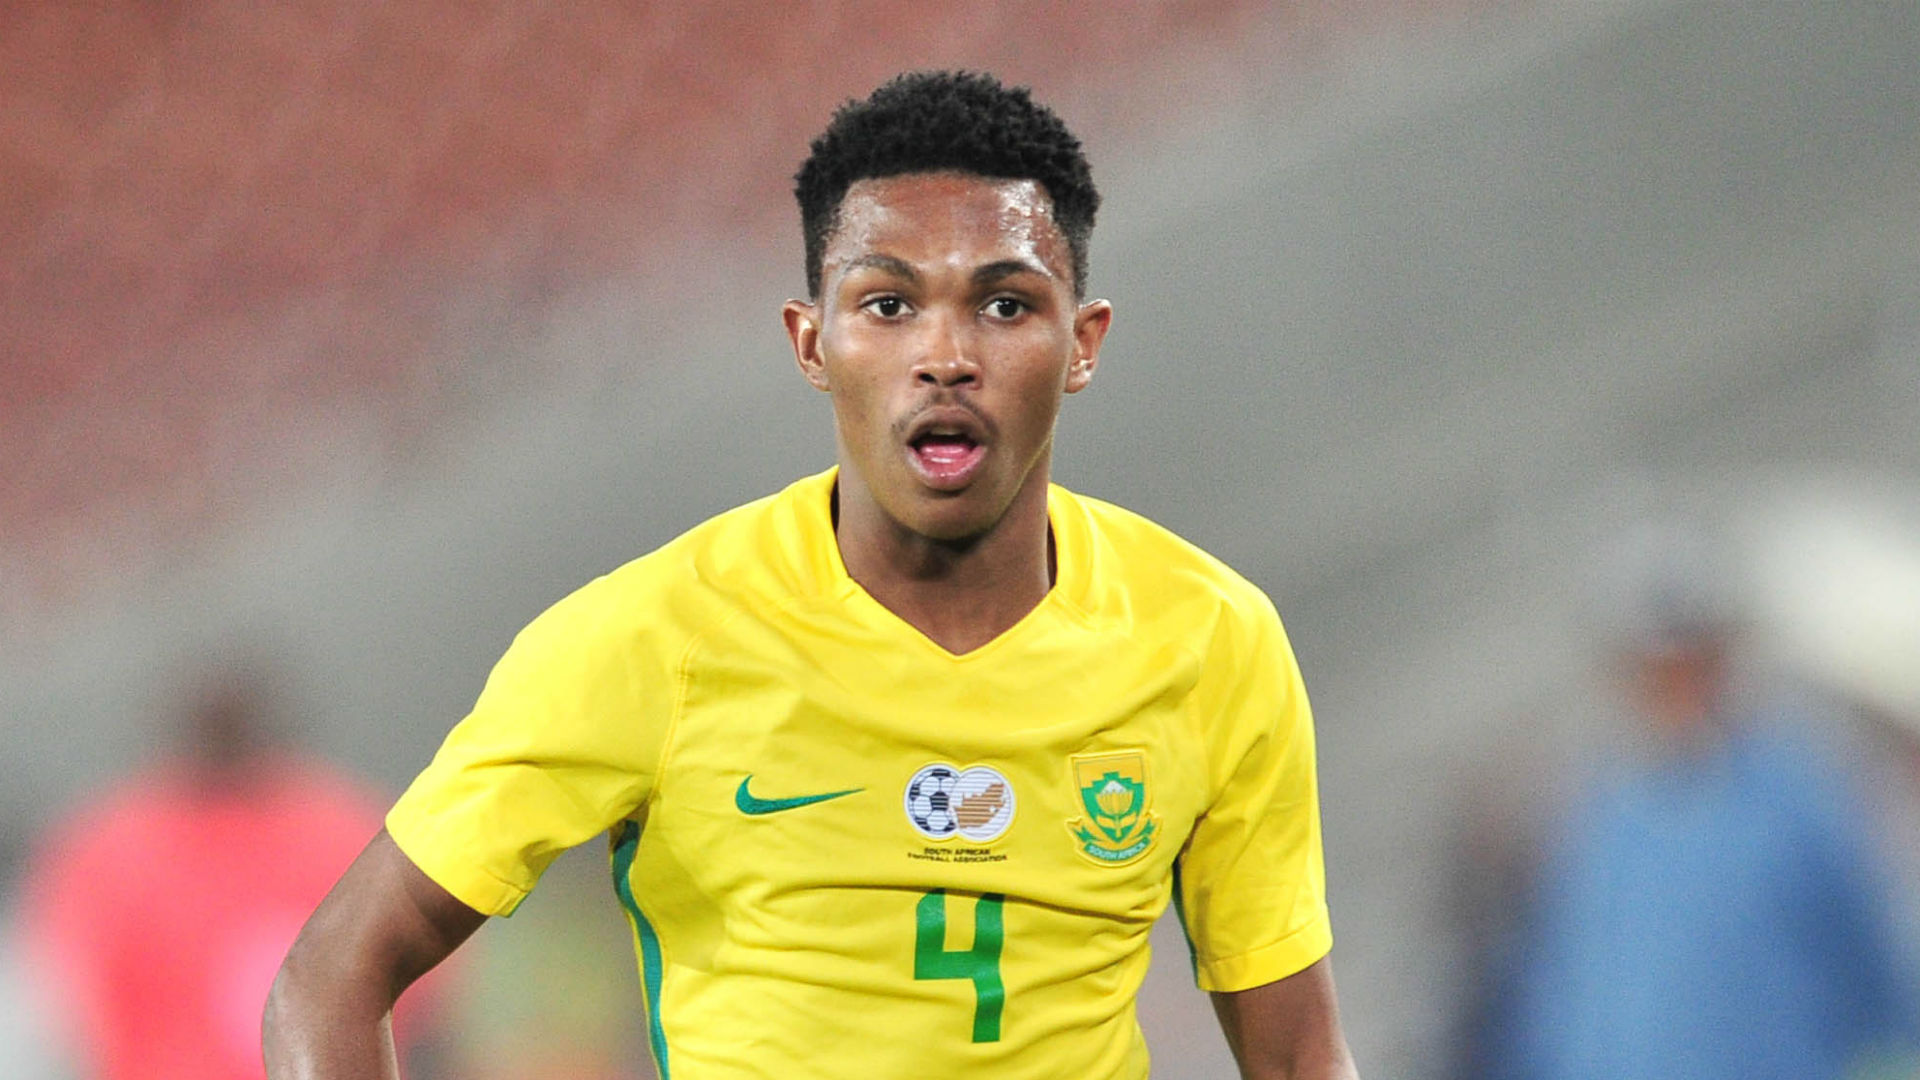 Ex-Kaizer Chiefs attacker Dladla urges Links to open Denmark doors for South Africans